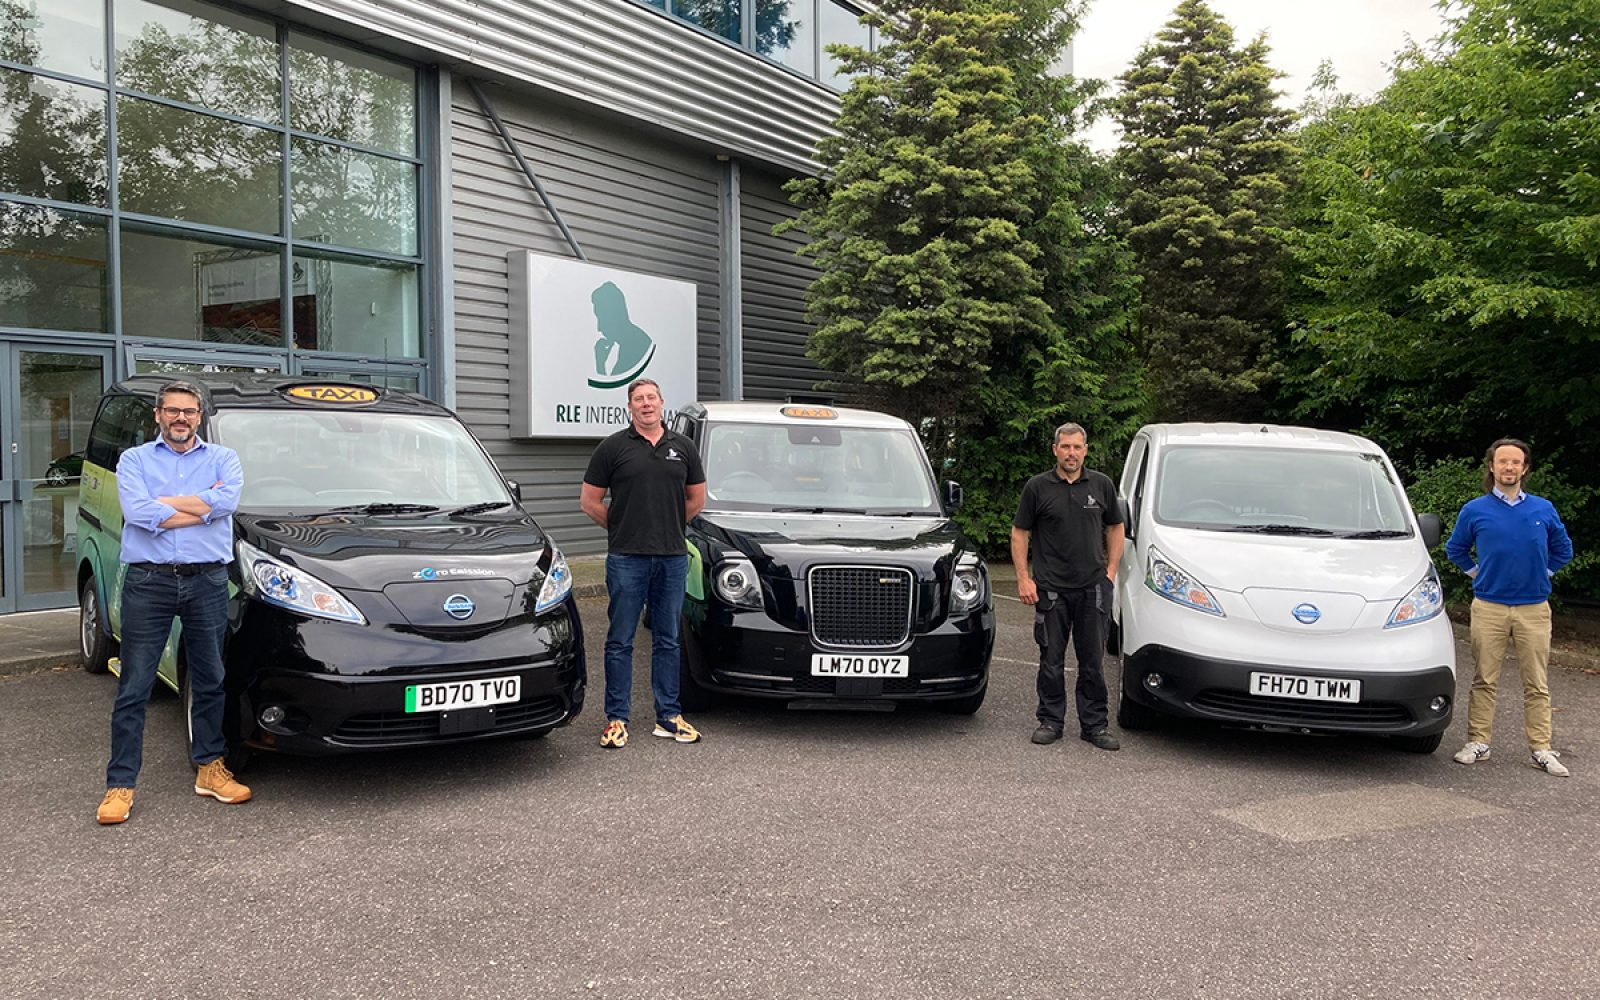 Ten taxis are to be part of the wireless charging trial in Nottingham. Image: Sprint Power